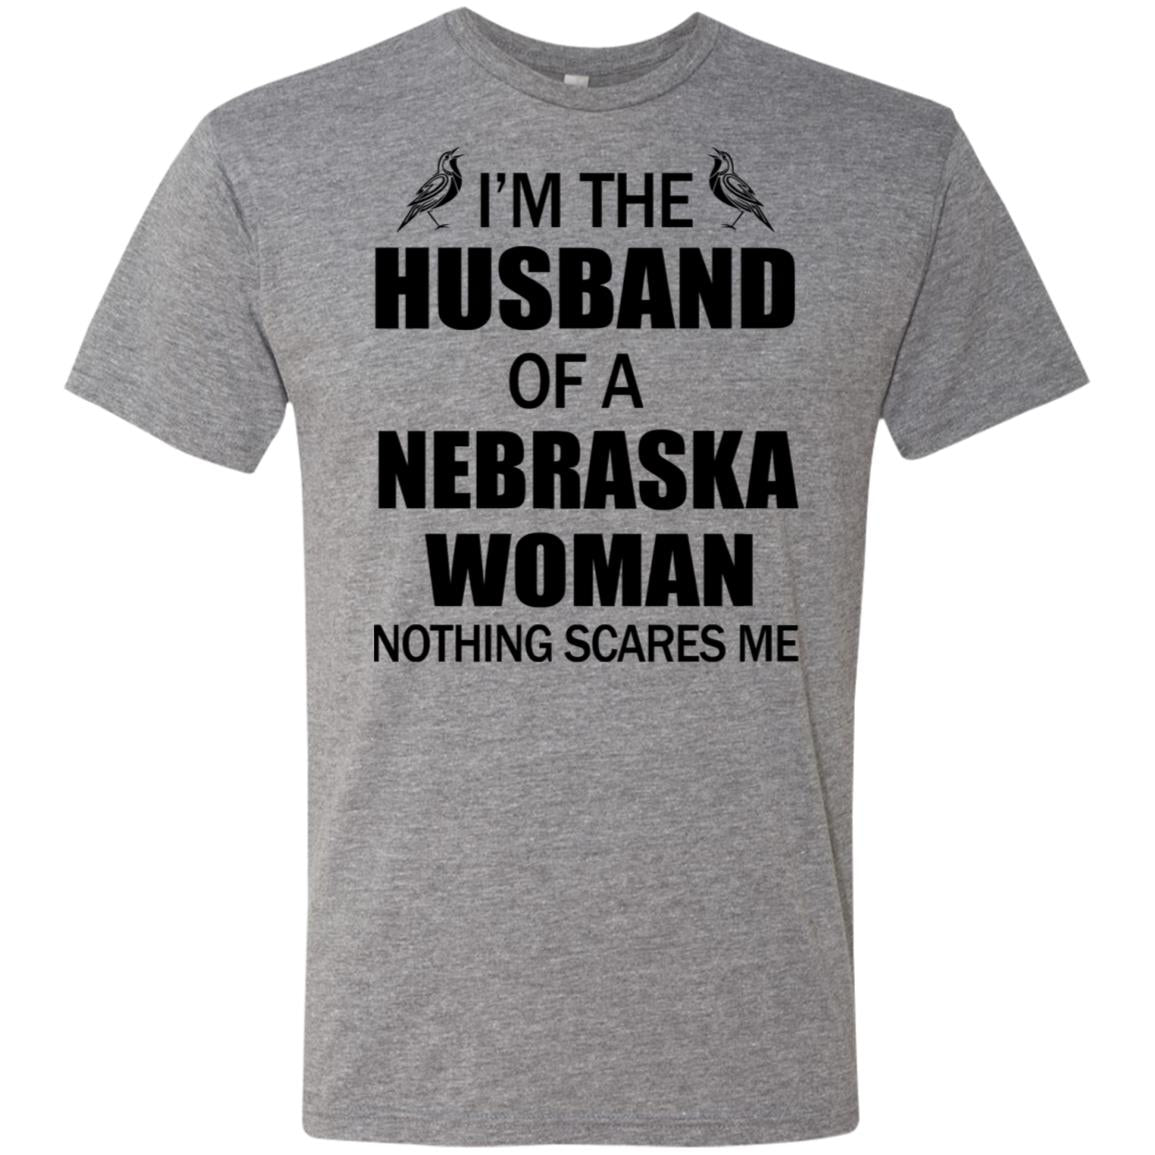 I'm The Husband Of A Nebraska Woman T-shirt